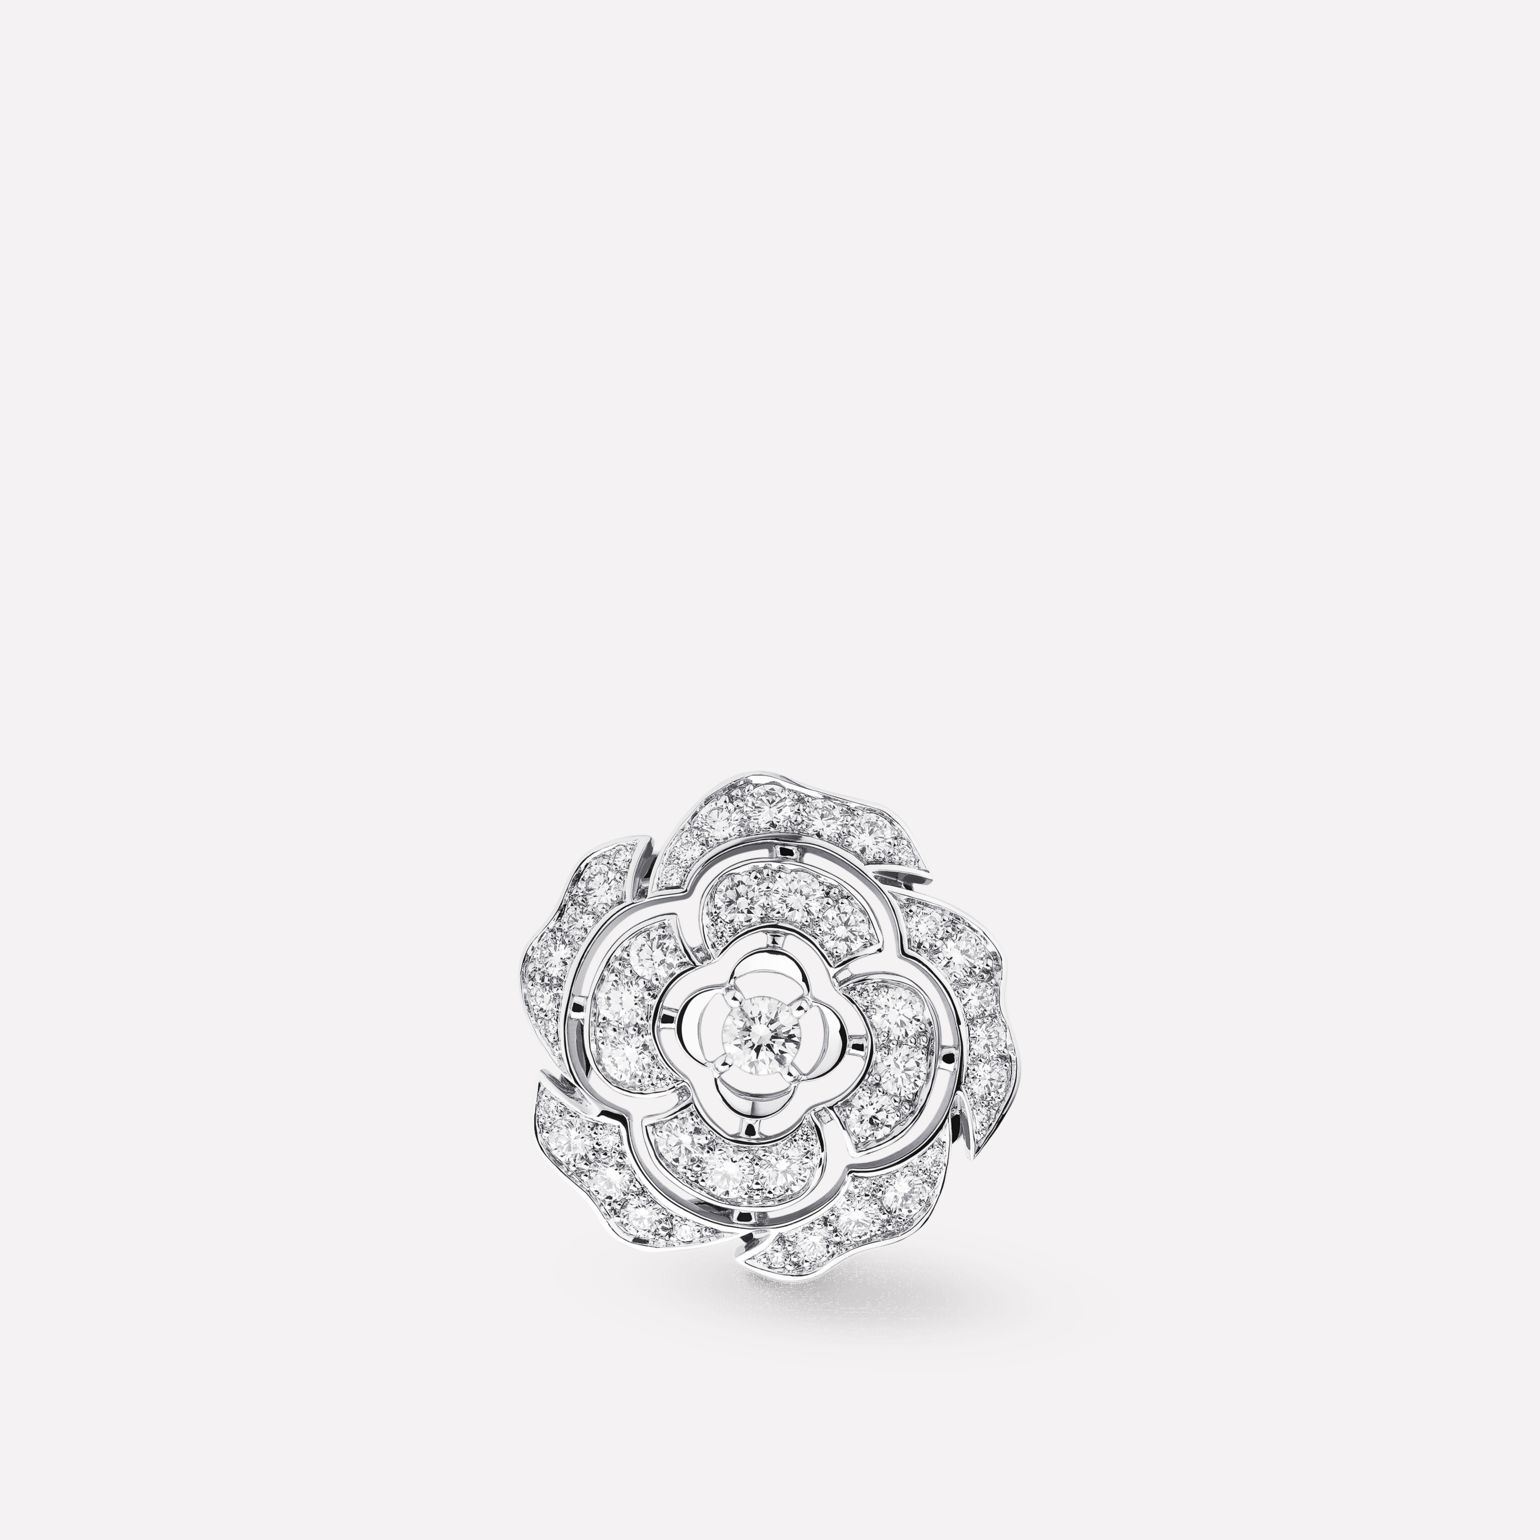 Camélia Brooch Camellia bud motif in 18K white gold, diamonds and central diamond